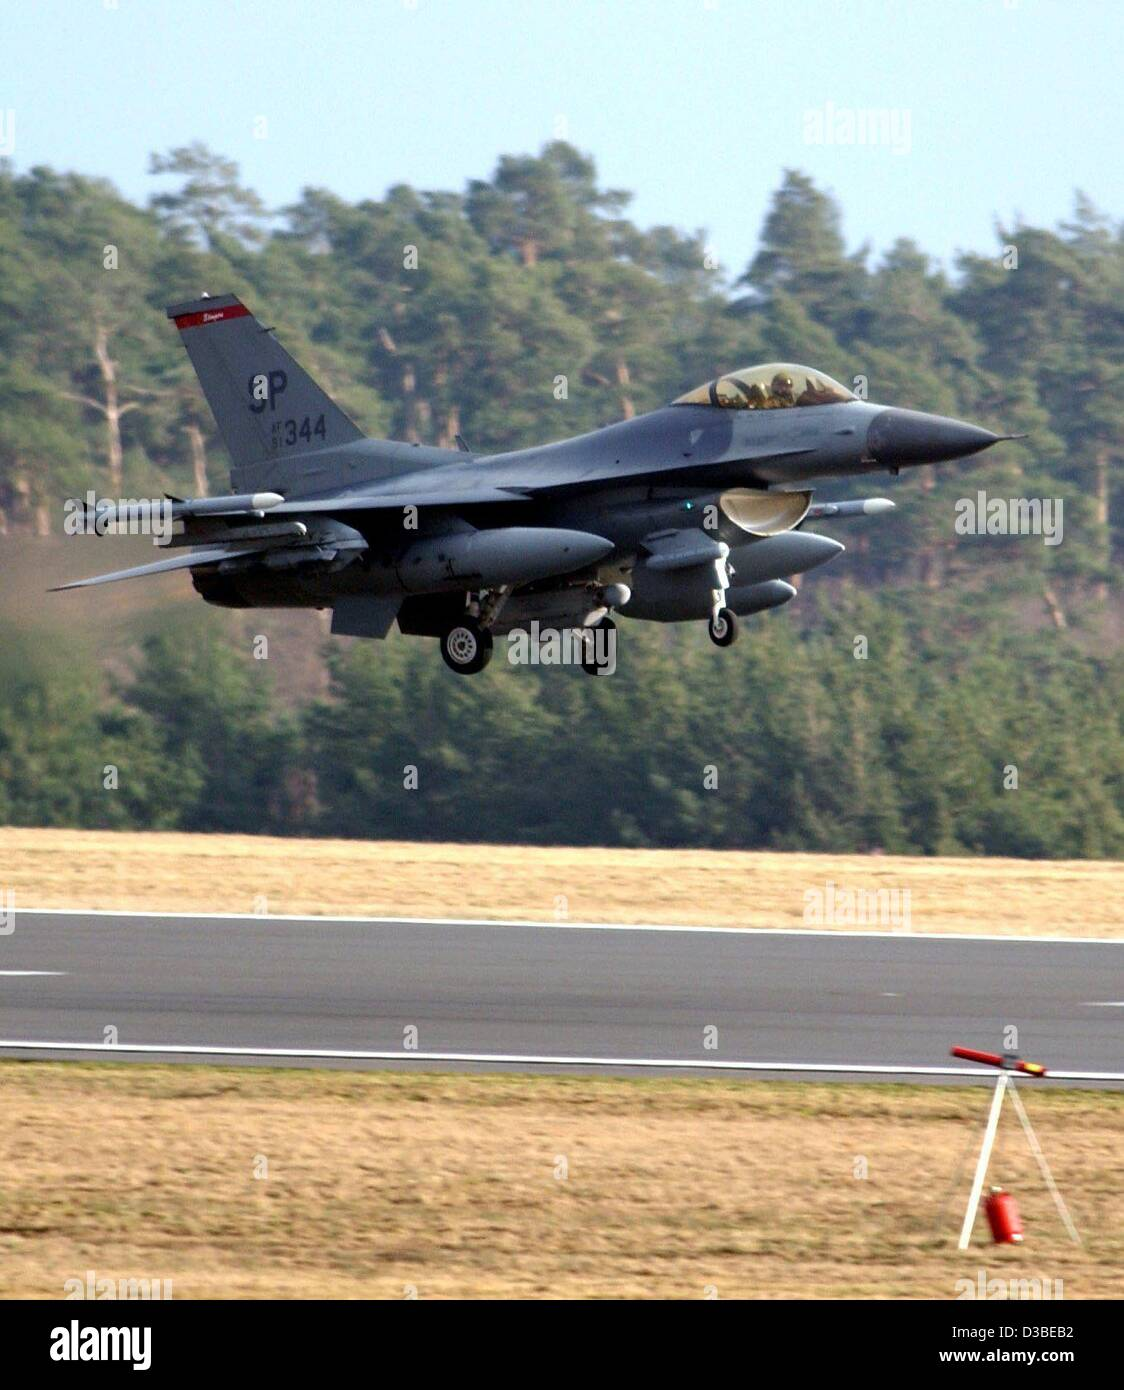 (dpa) - A war plane of type F 16 of the 52nd fighter group takes off from the US airbase in Spangdahlem, Germany, - Stock Image